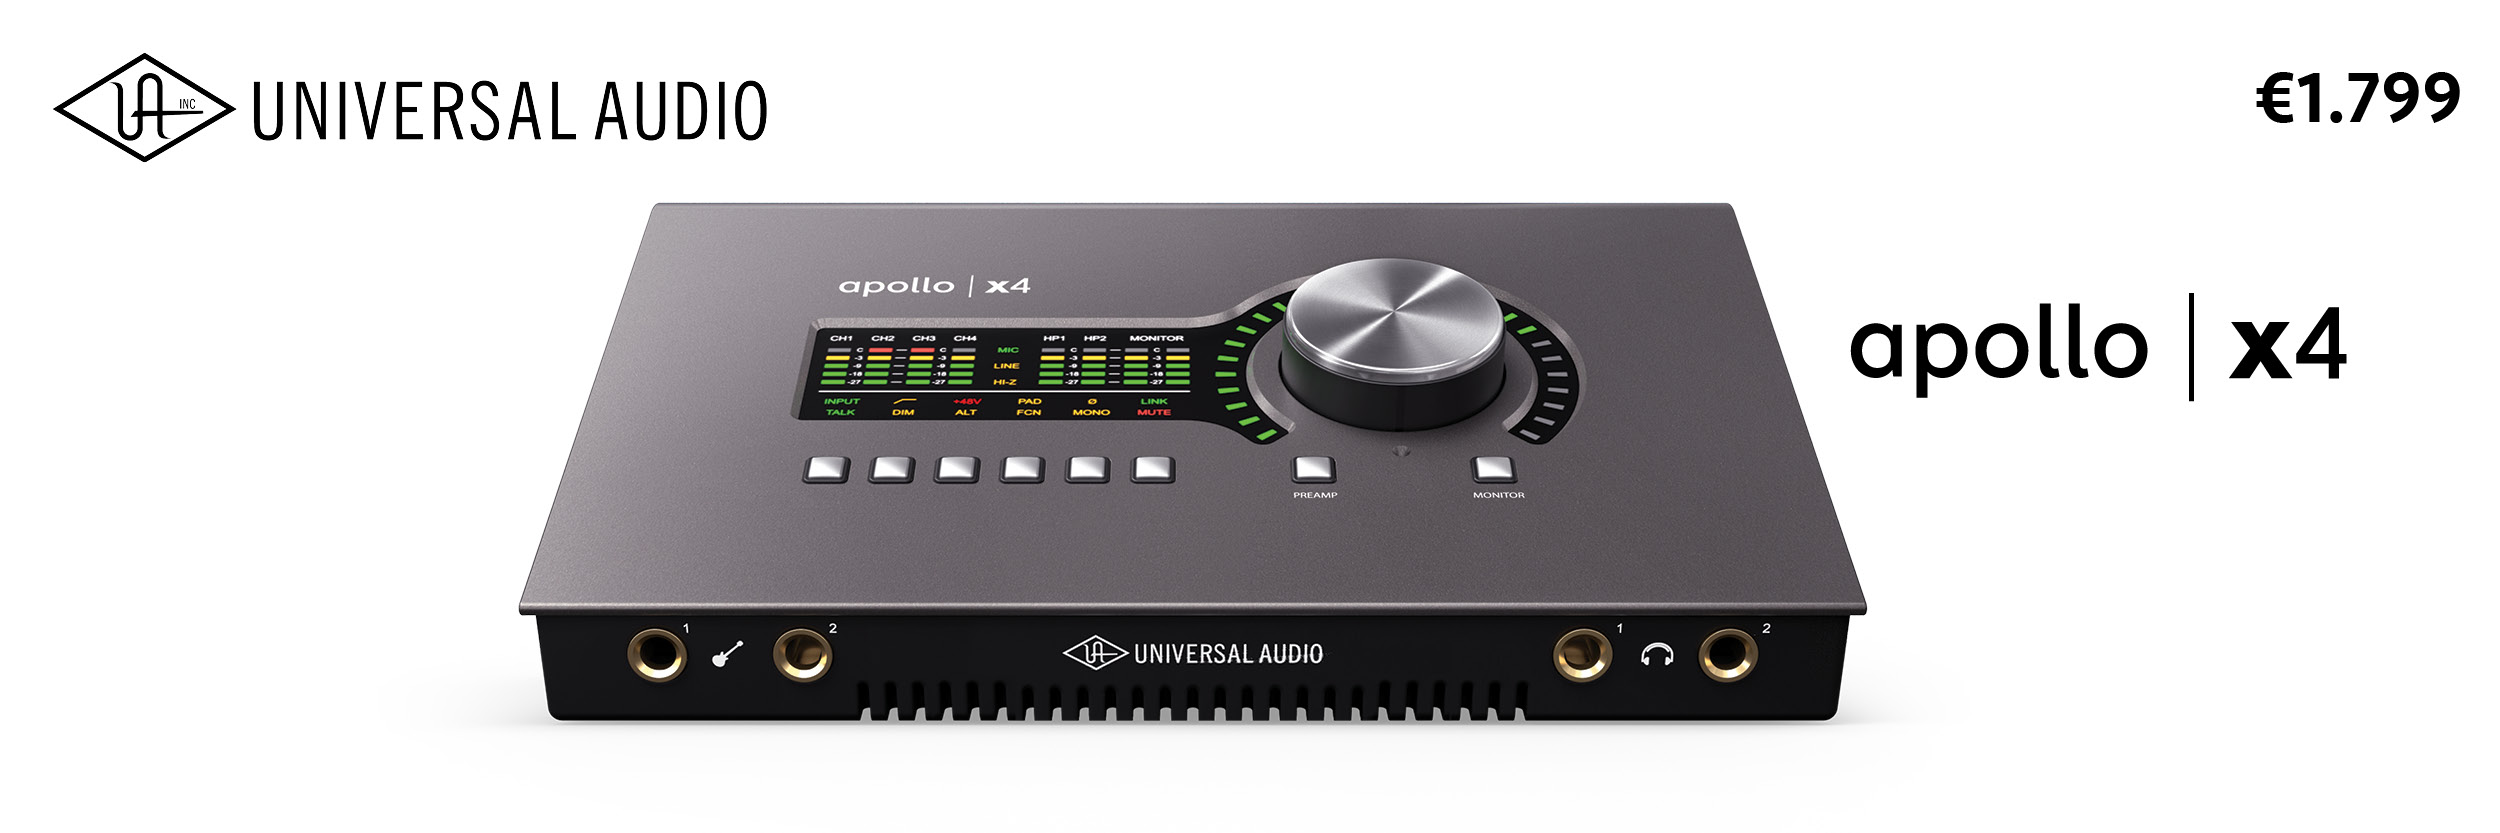 Universal Audio Apollo X4 | Desktop Audio Interface